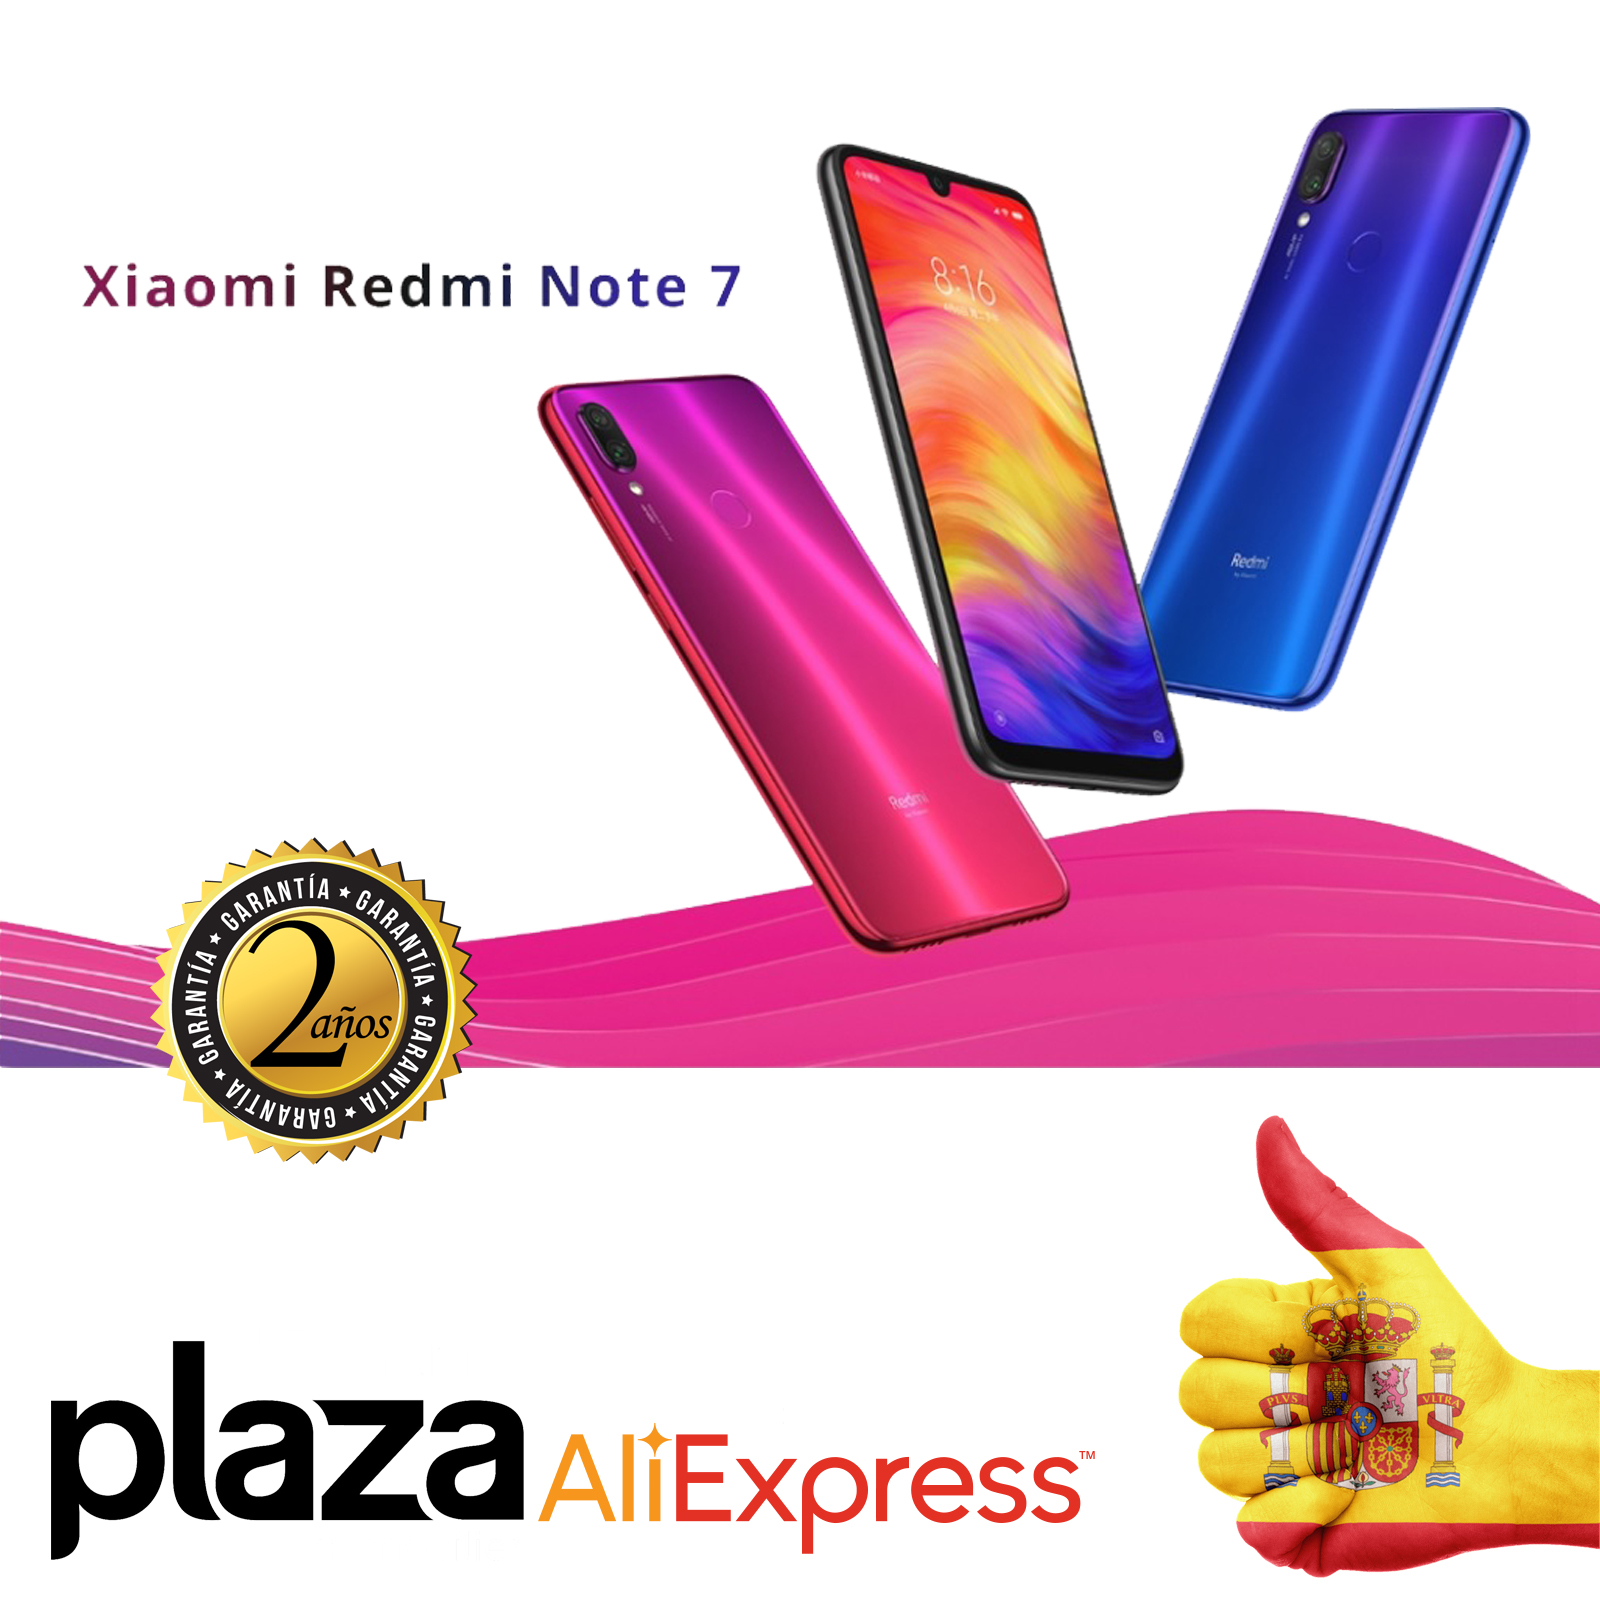 Xiao Mi Note Redmi 7 Smartphone (4 hard GB, 64 hard GB ROM, phone mobile, free, new, cheap, 4000mAh battery, camera 48MP) [Global Version]